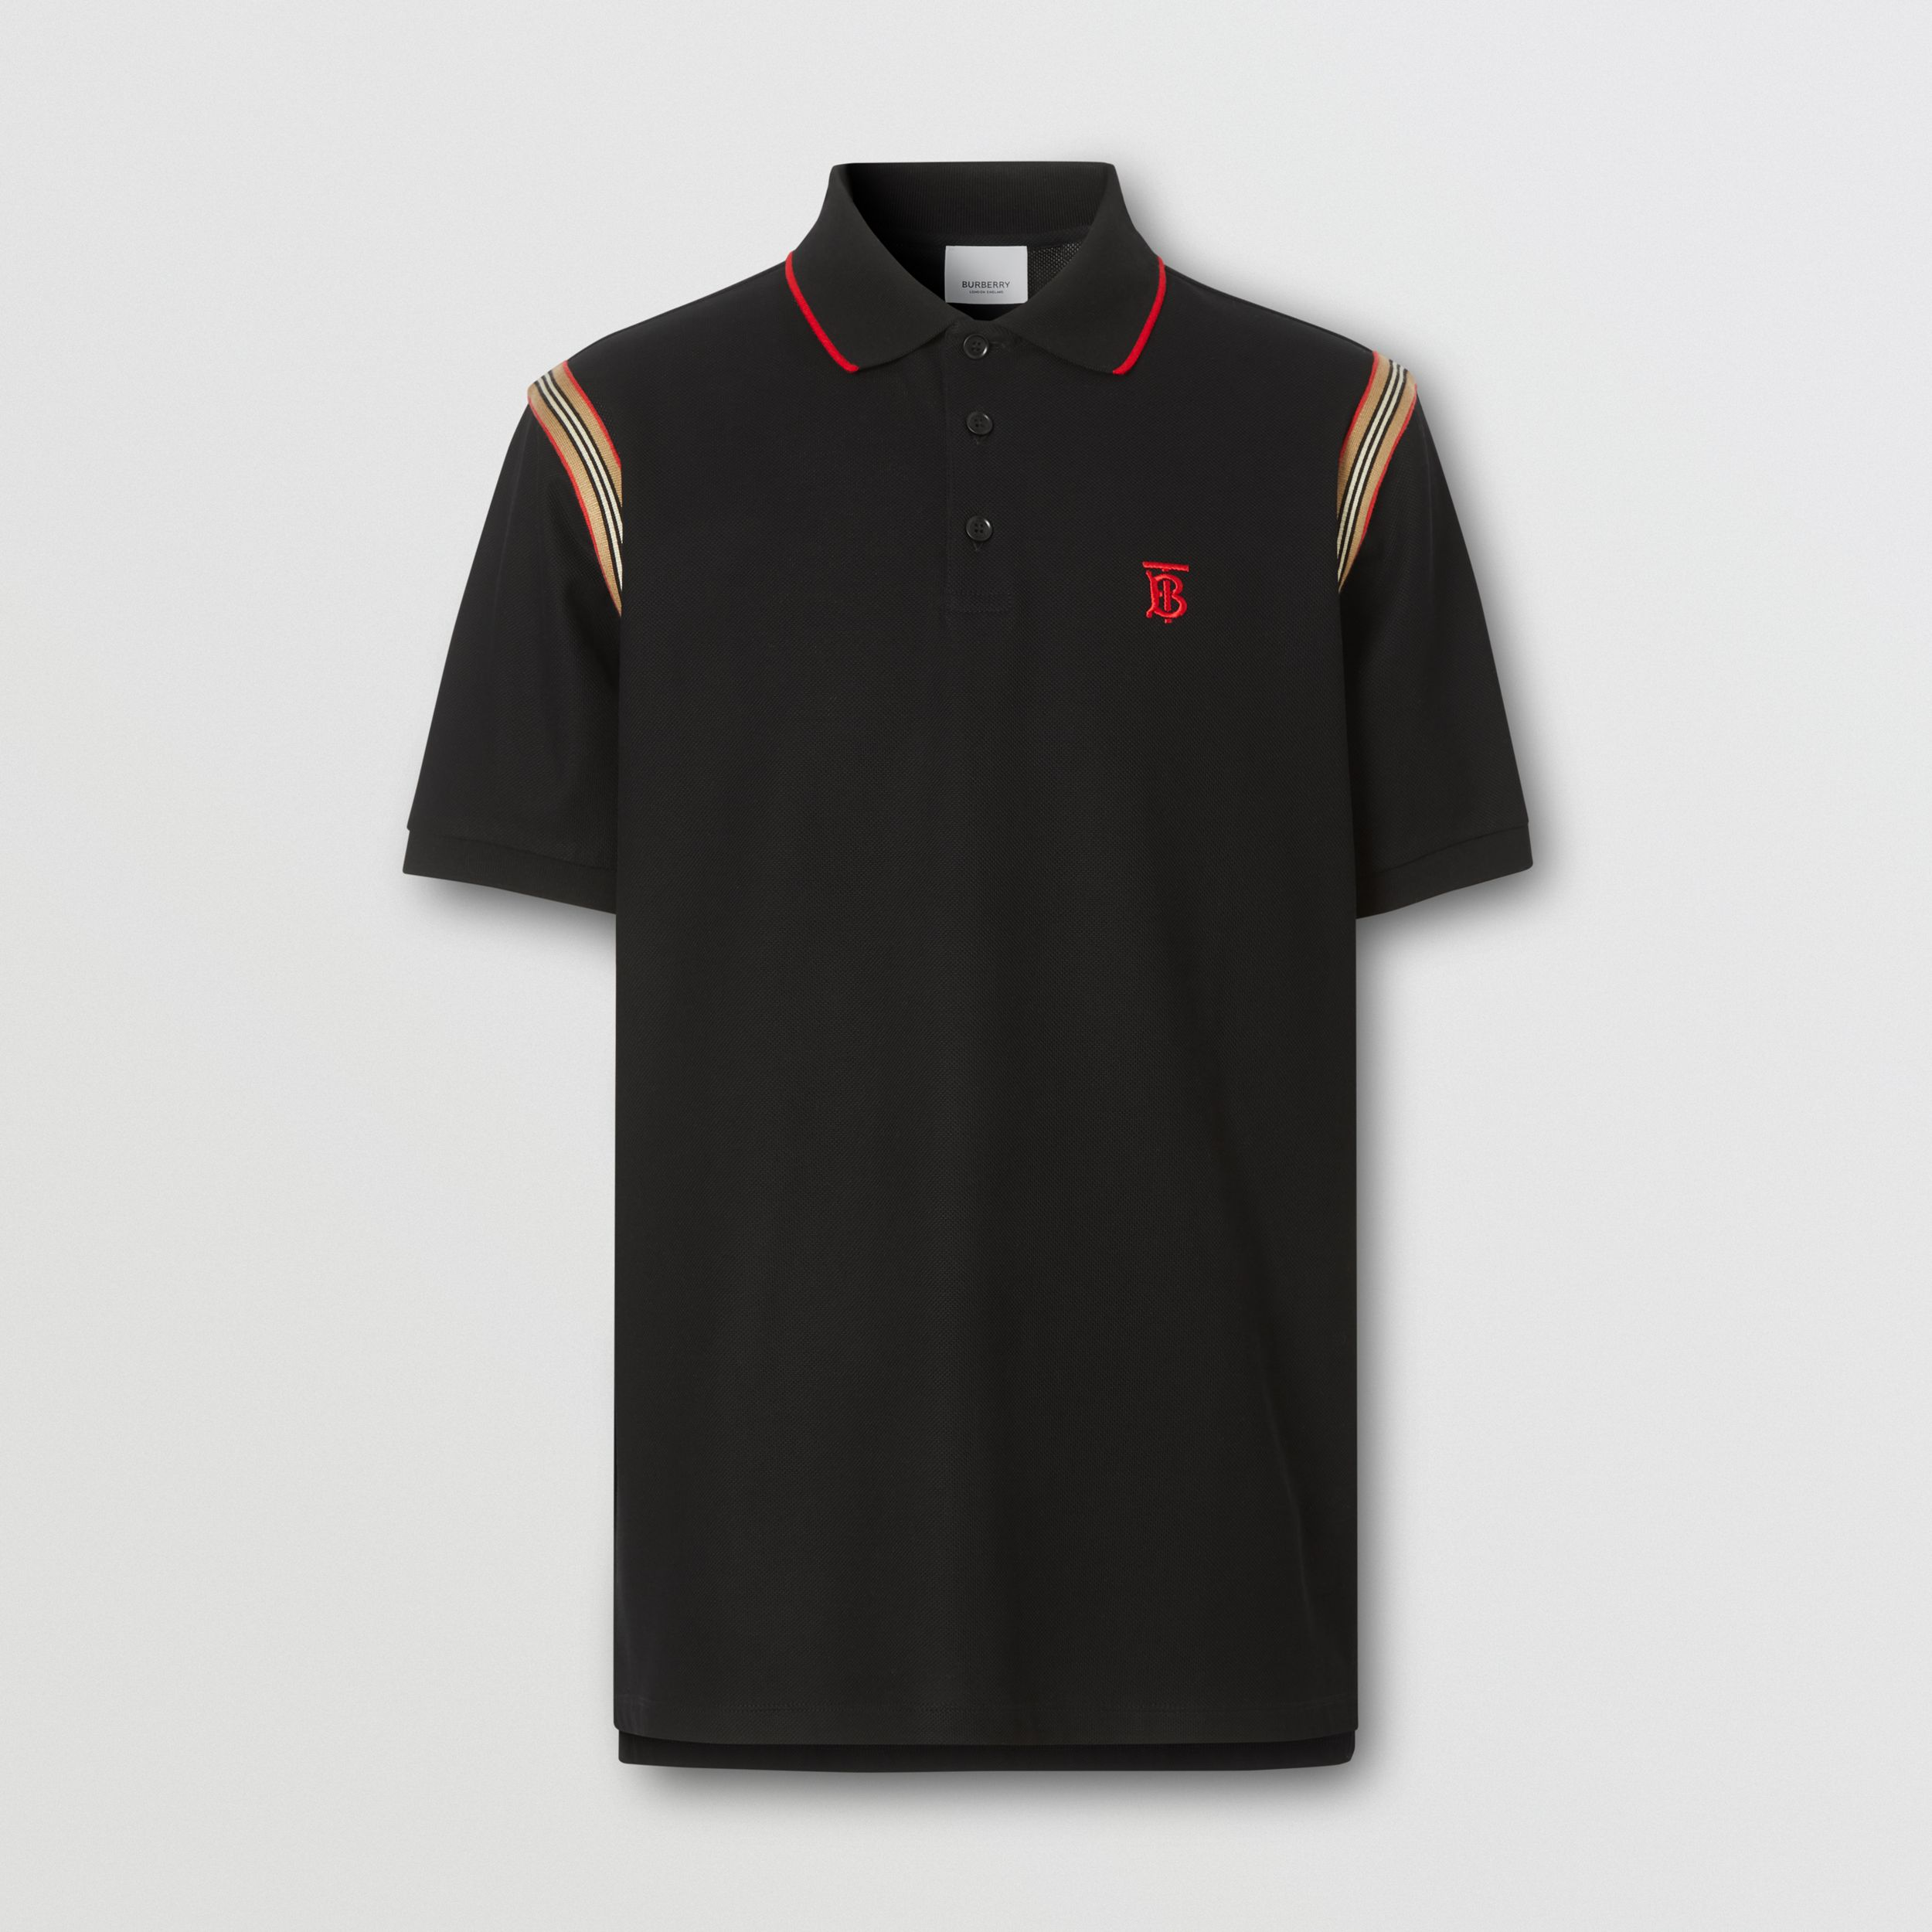 Icon Stripe Trim Monogram Motif Cotton Polo Shirt in Black - Men | Burberry Canada - 4